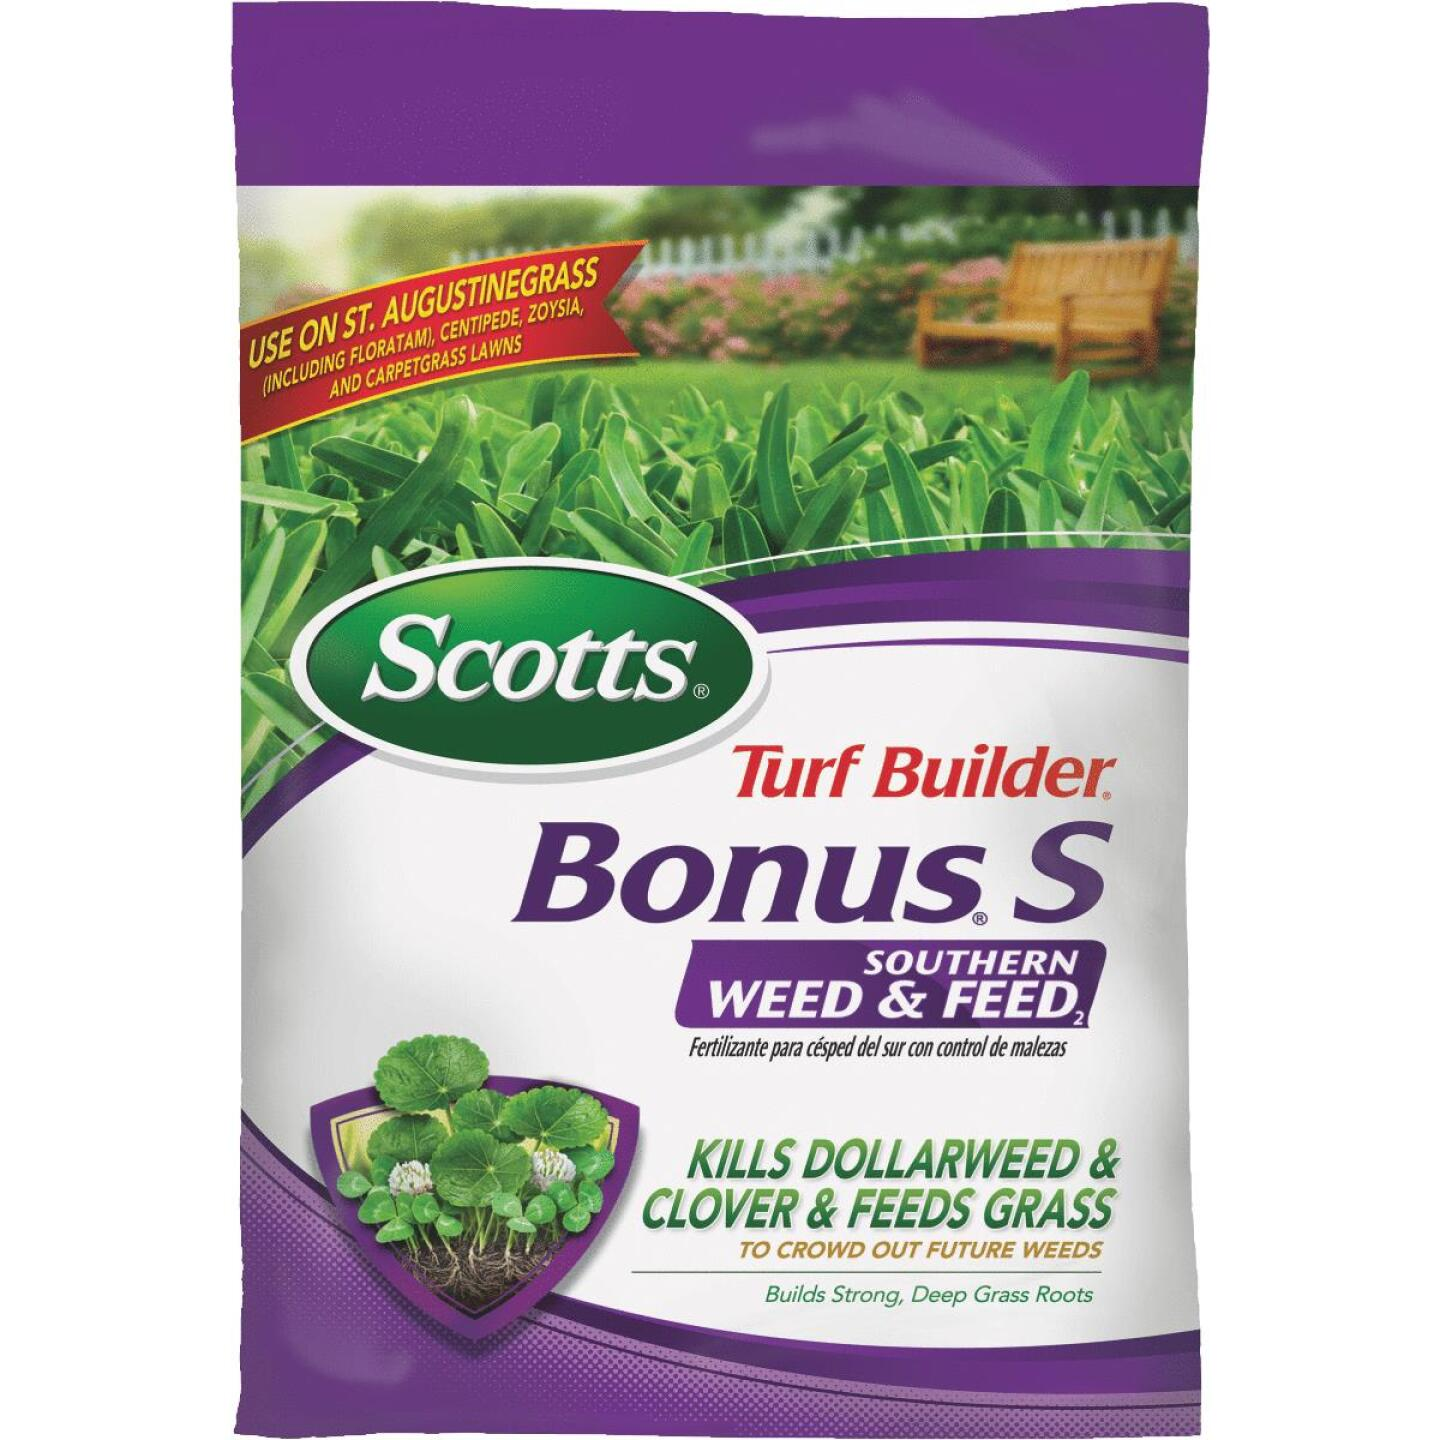 Scotts Turf Builder Bonus S Southern Weed & Feed 18.62 Lb. 5000 Sq. Ft. 29-0-10 Lawn Fertilizer with Weed Killer Image 1